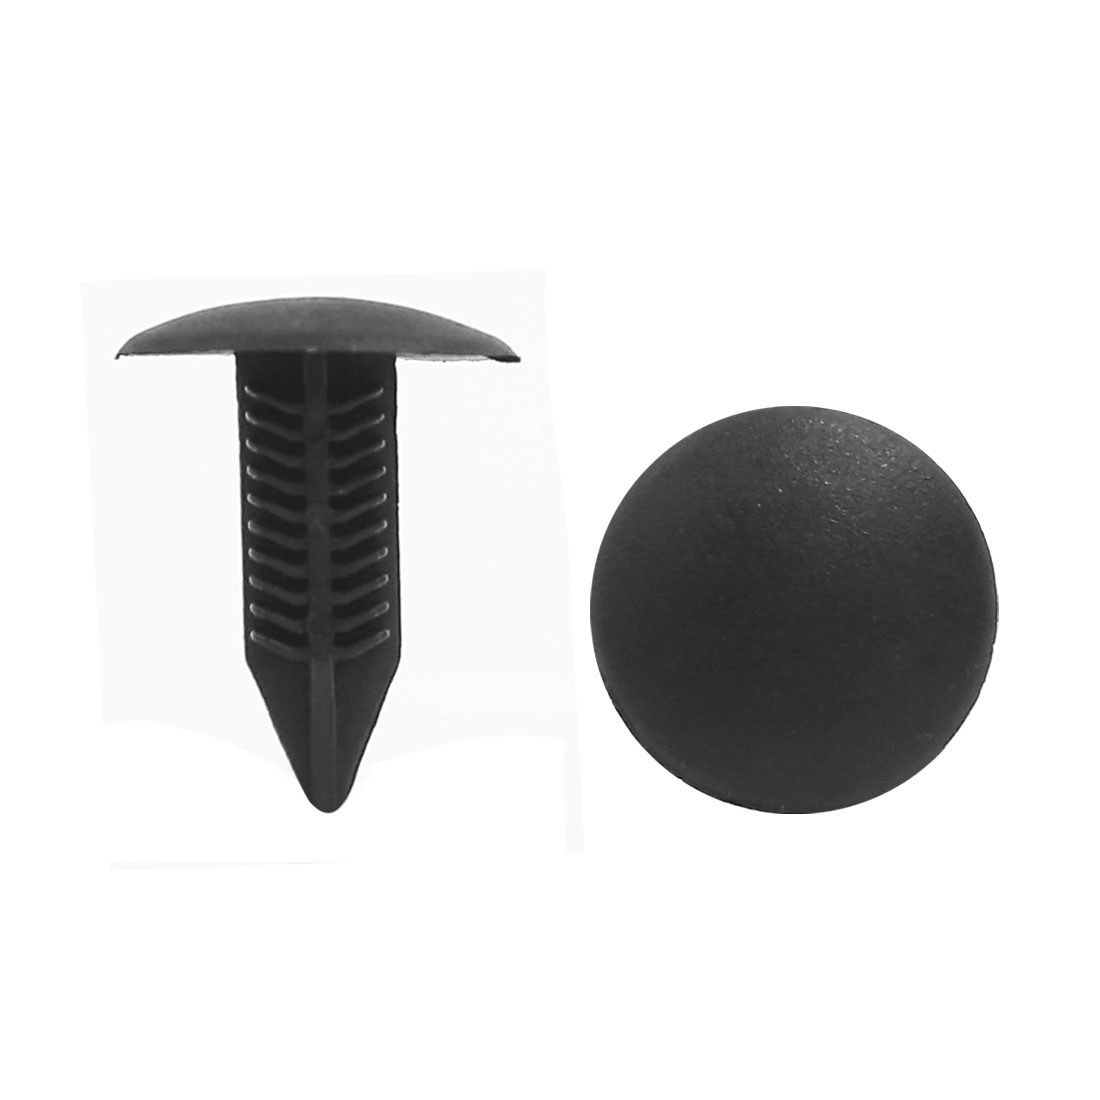 6.5mm x 6.6mm Hole Car Door Plastic Rivet Fastener Trim Panel Clip Black 20pcs